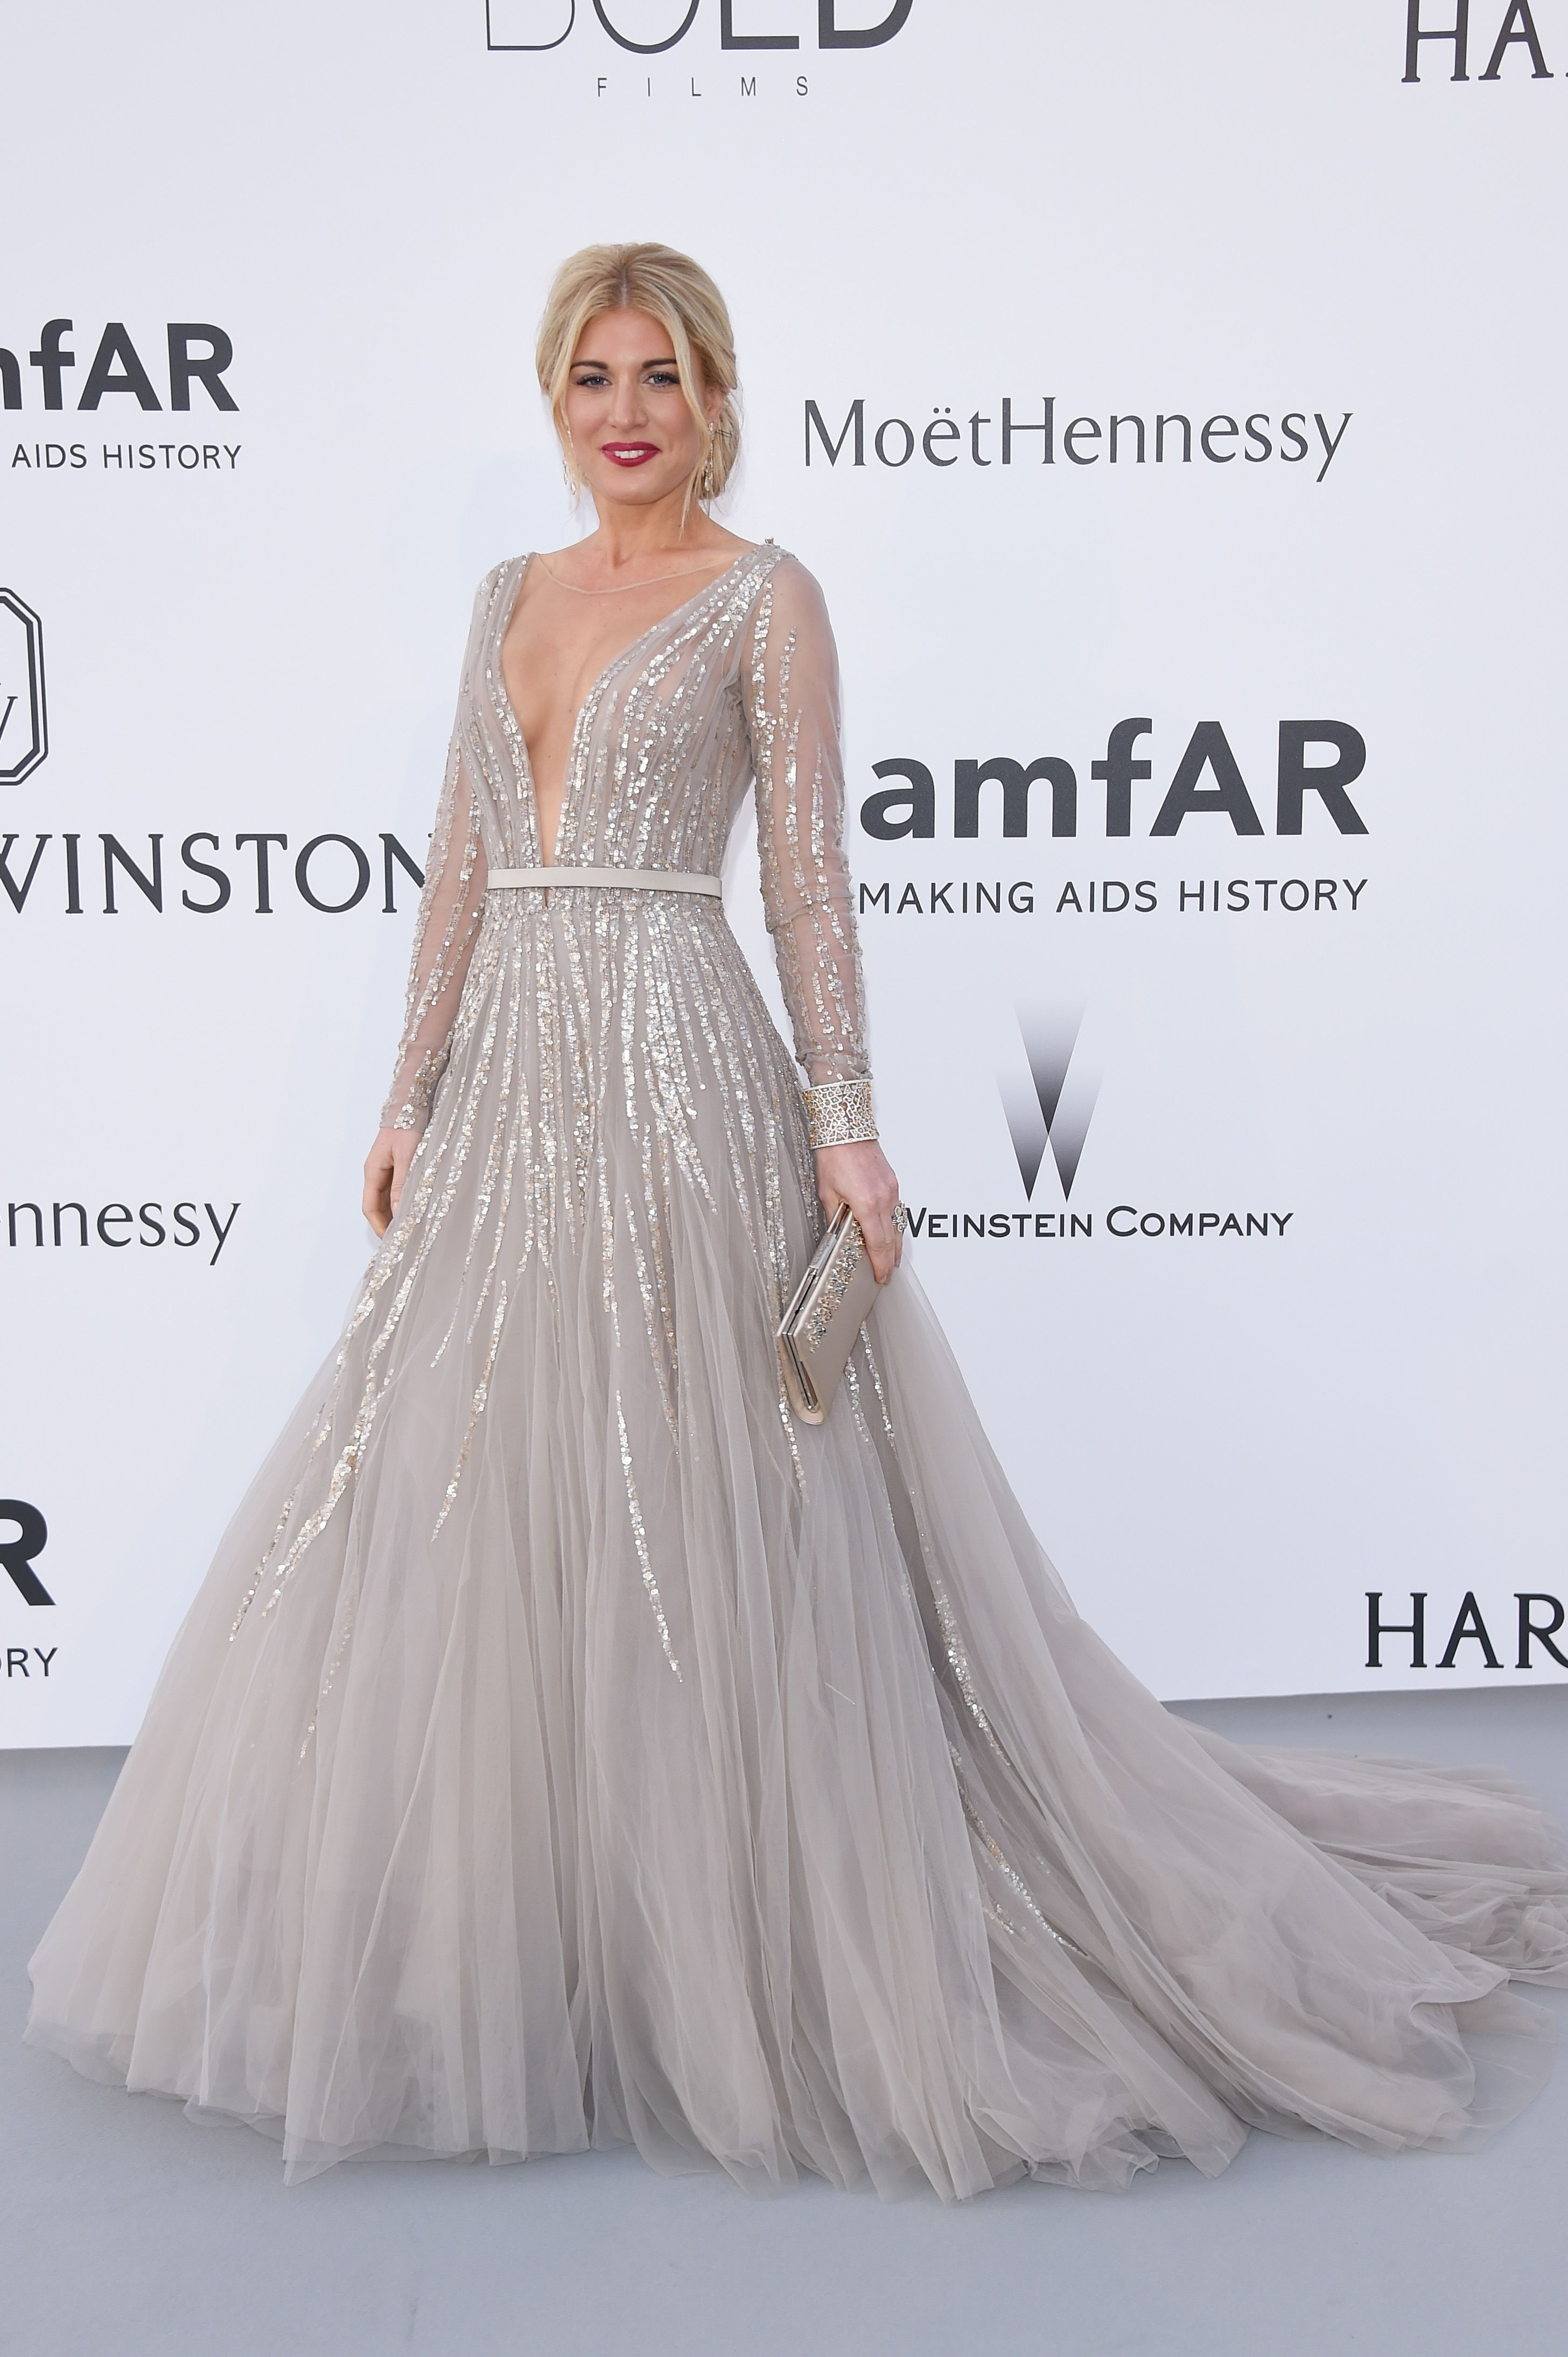 67 Red Carpet Looks From the amfAR Gala | Kleidung